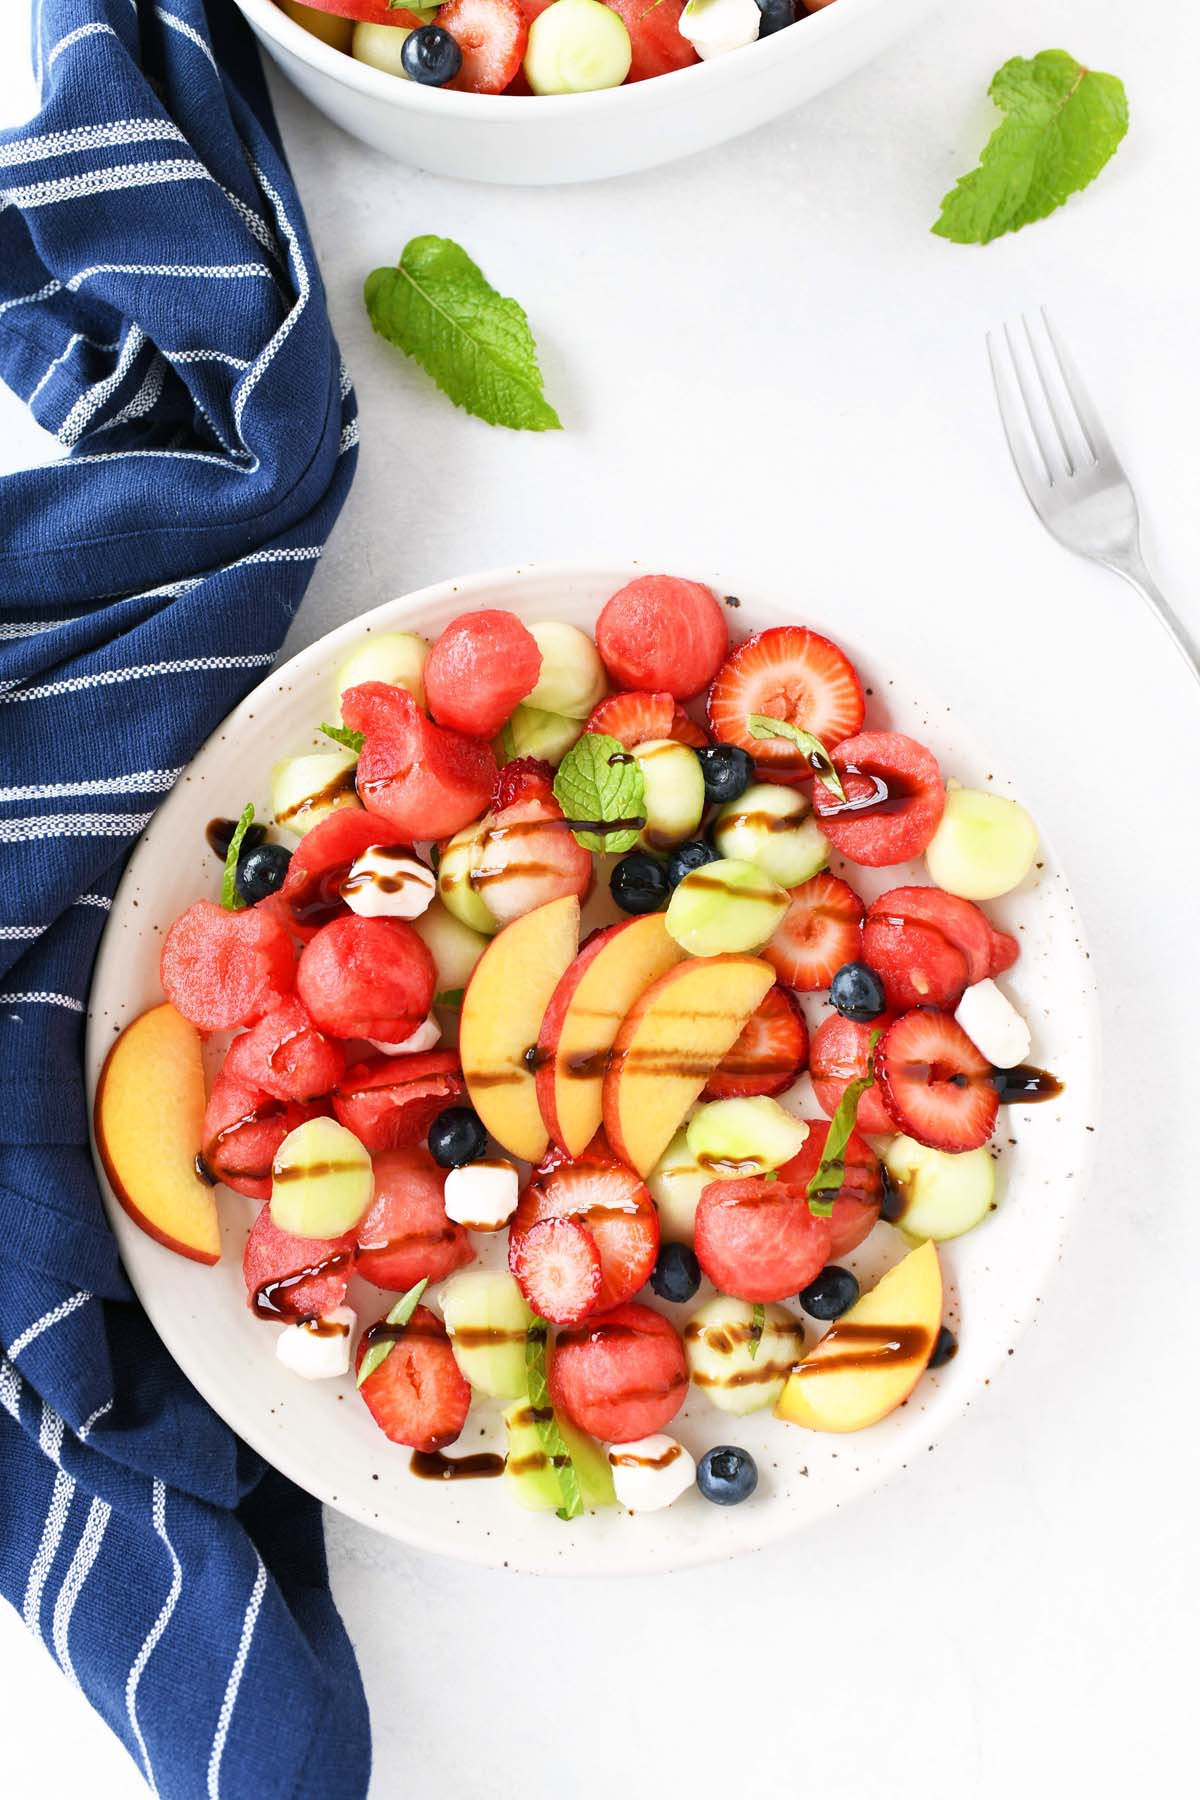 Caprese Melon Salad with glaze in a white plate.